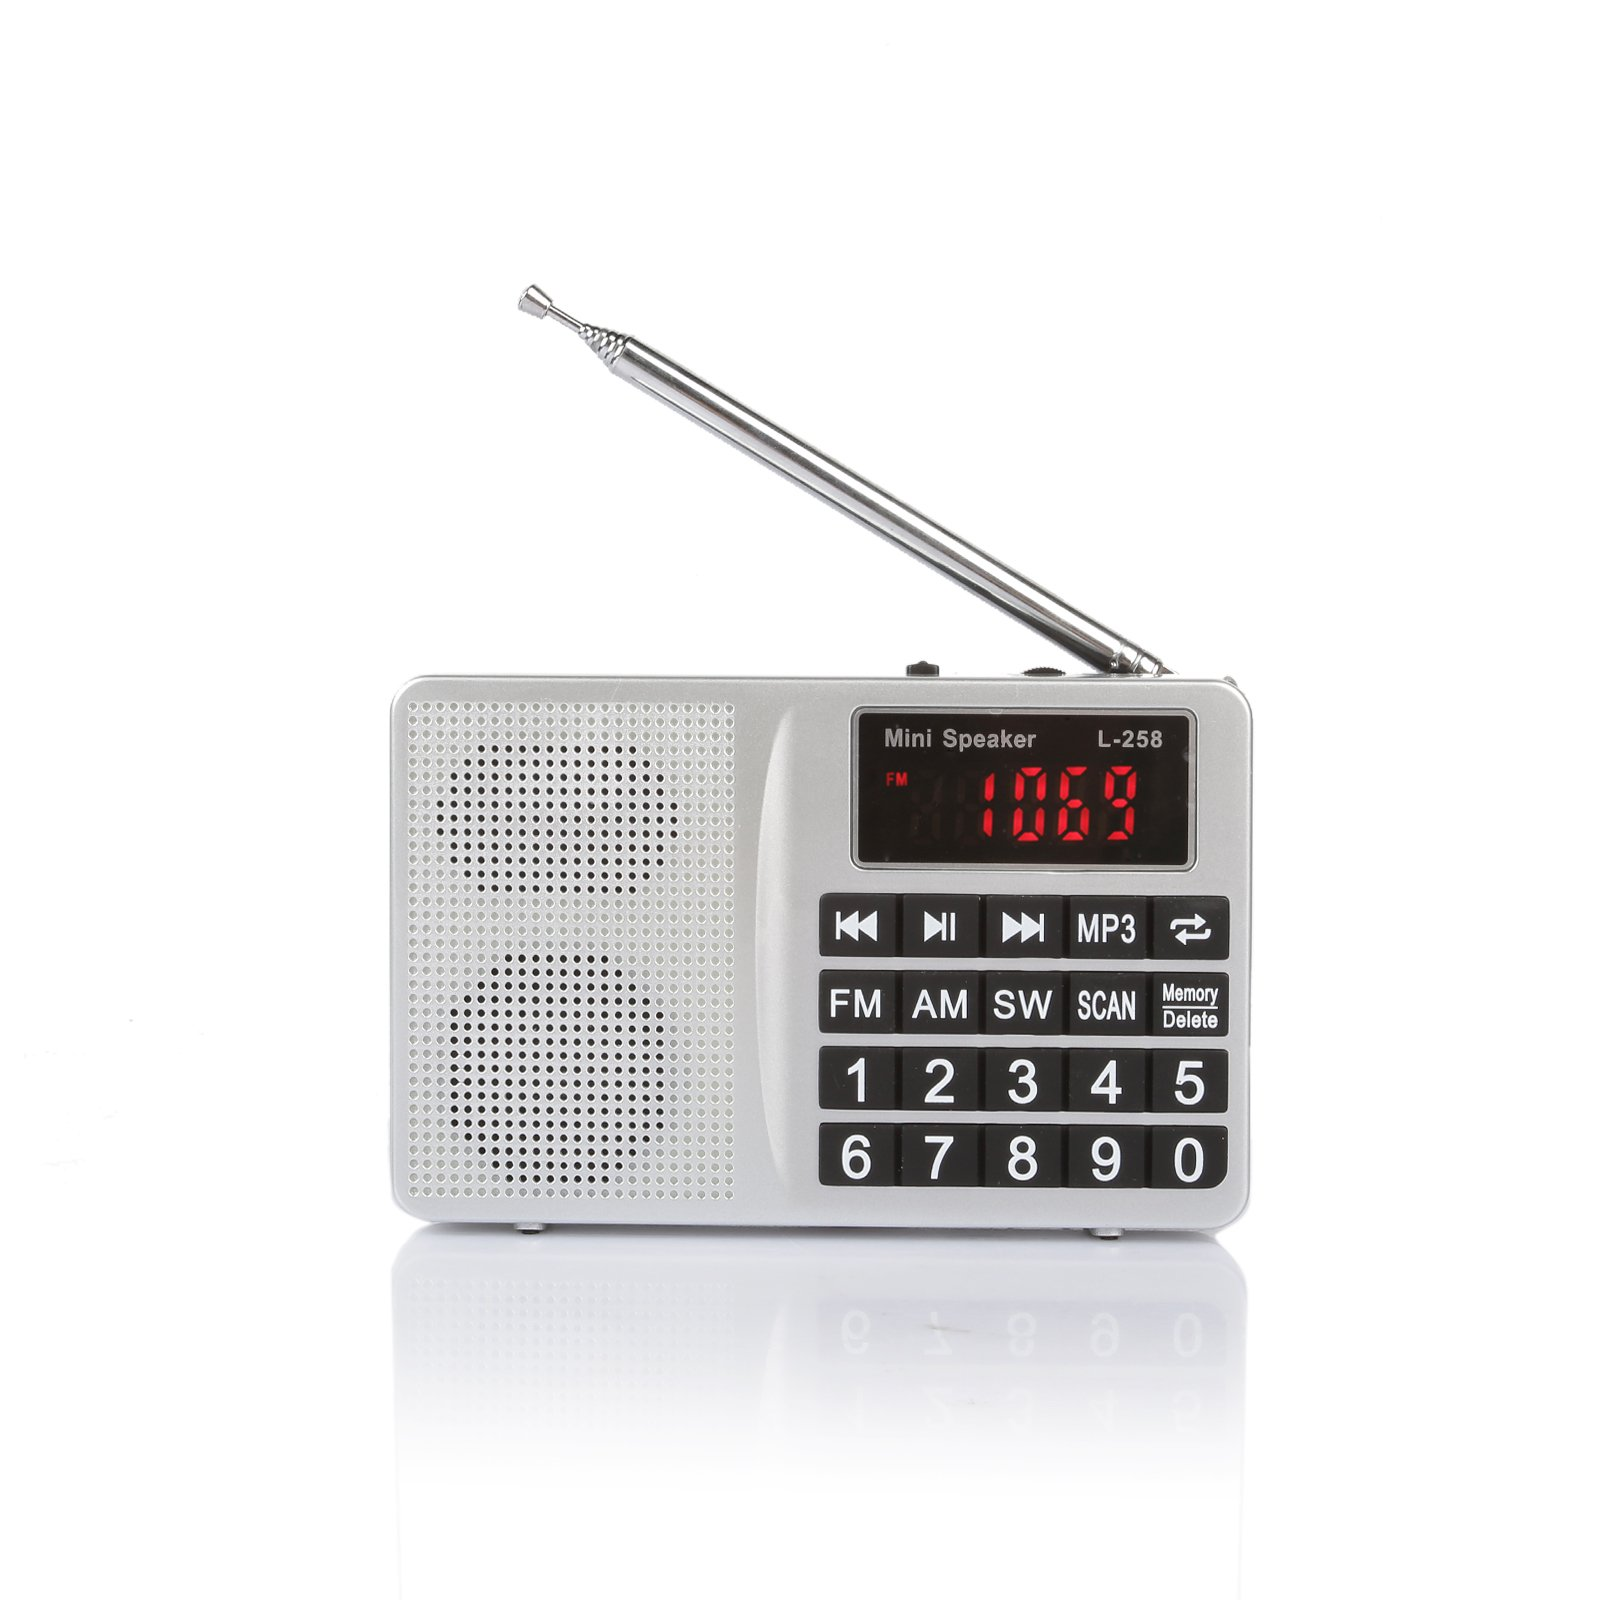 Radioddity RF21 FM AM SW World Band Handheld Digital Radio Shortwave Multiband Receiver MP3 Player, With Micro TF Card USB Port, Rechargeable 1000mAh Battery Silver